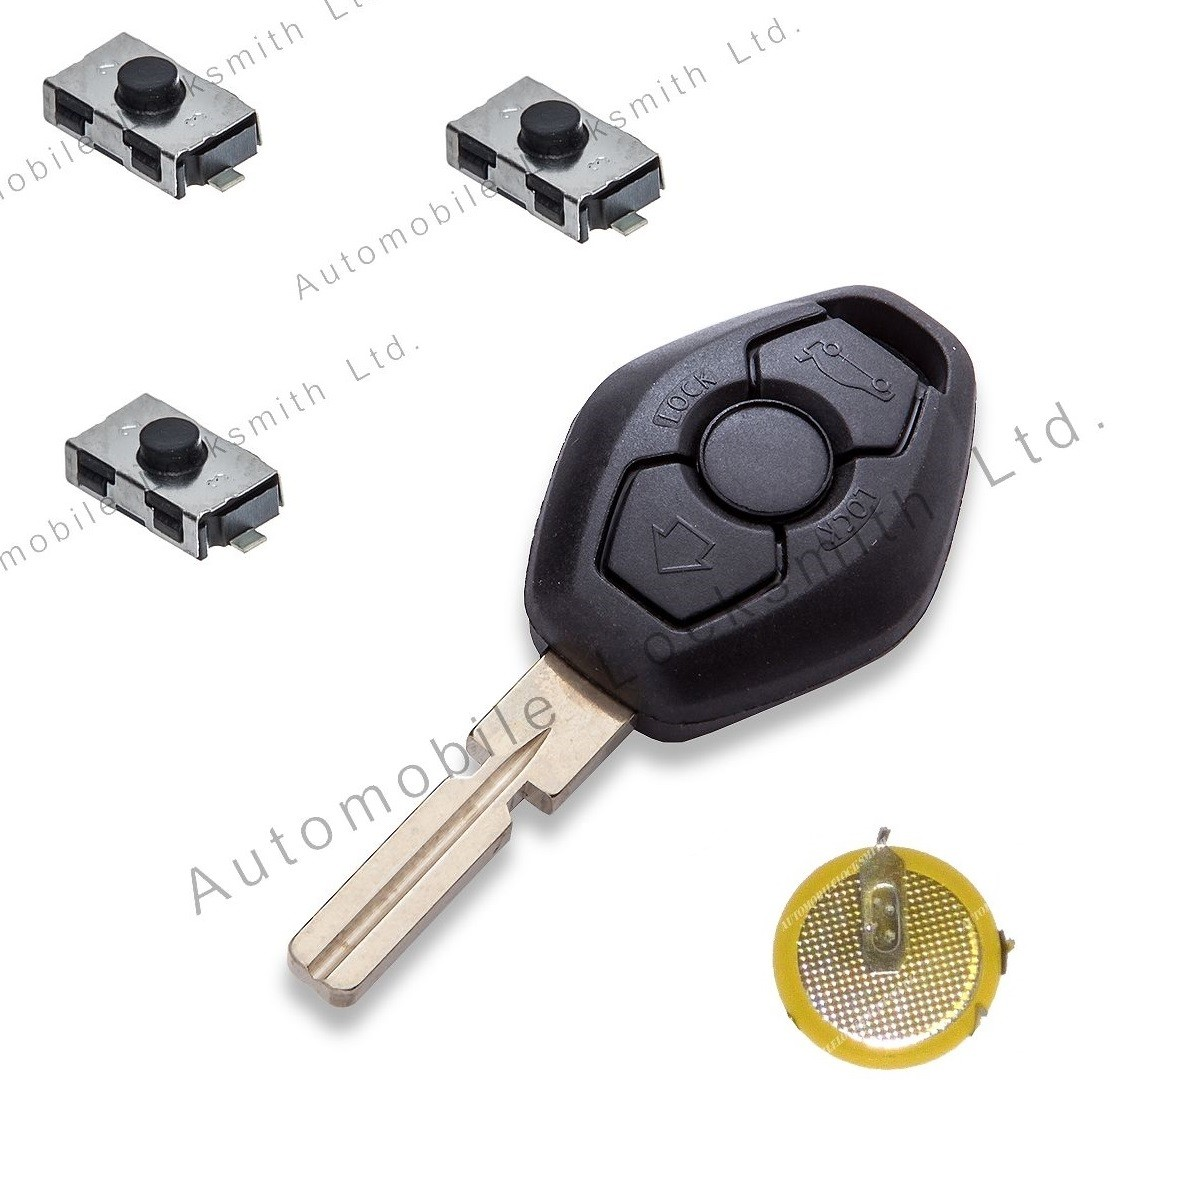 DIY Repair kit for BMW 3 button remote key with HU58 blade